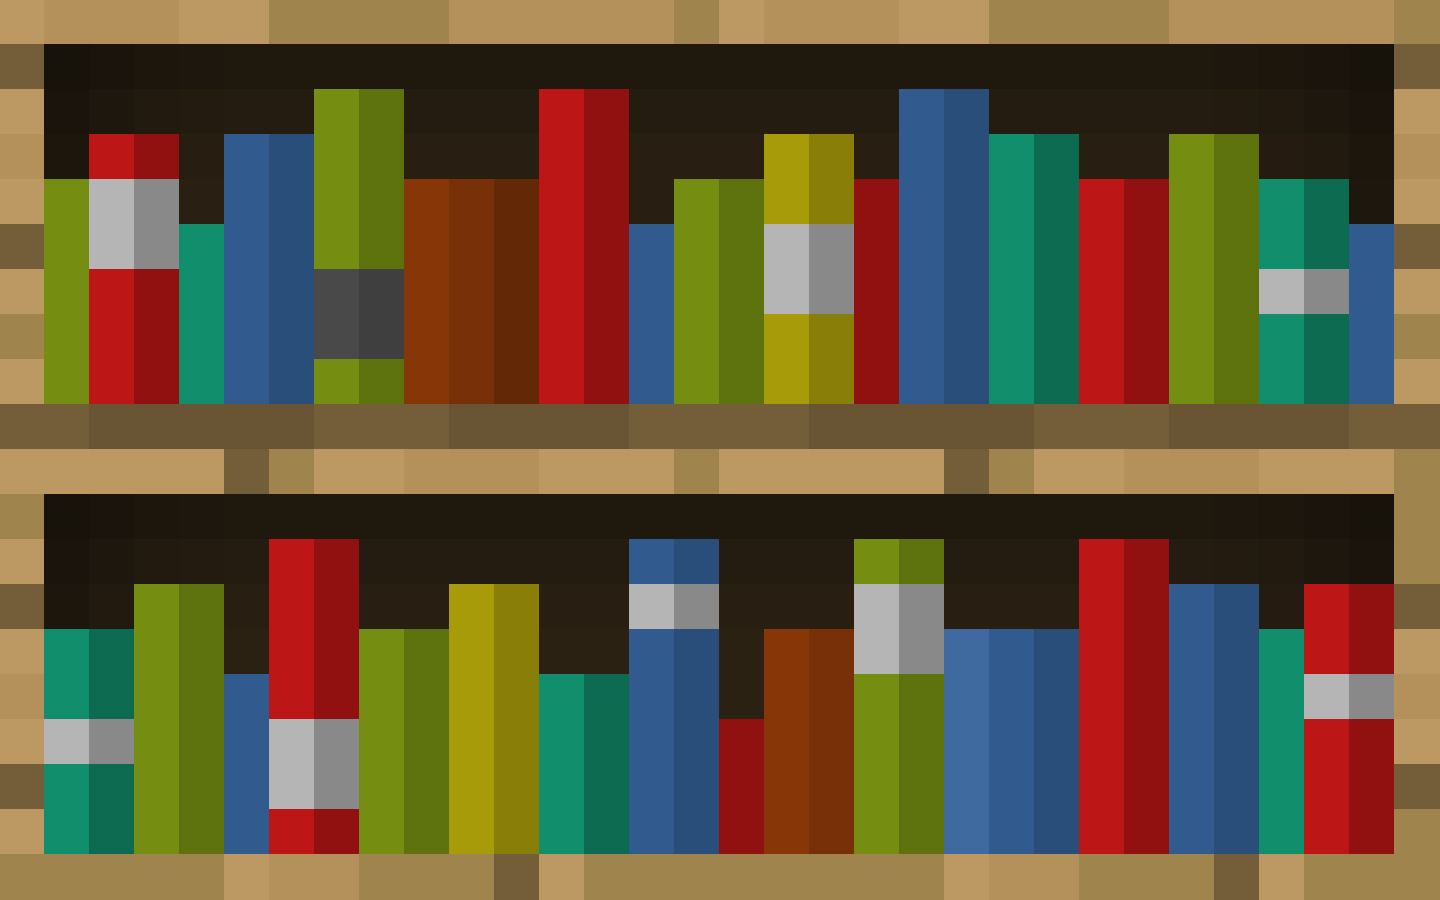 Very Impressive portraiture of Minecraft Bookcase Wallpaper by LynchMob10 09 on deviantART with #B61515 color and 1440x900 pixels